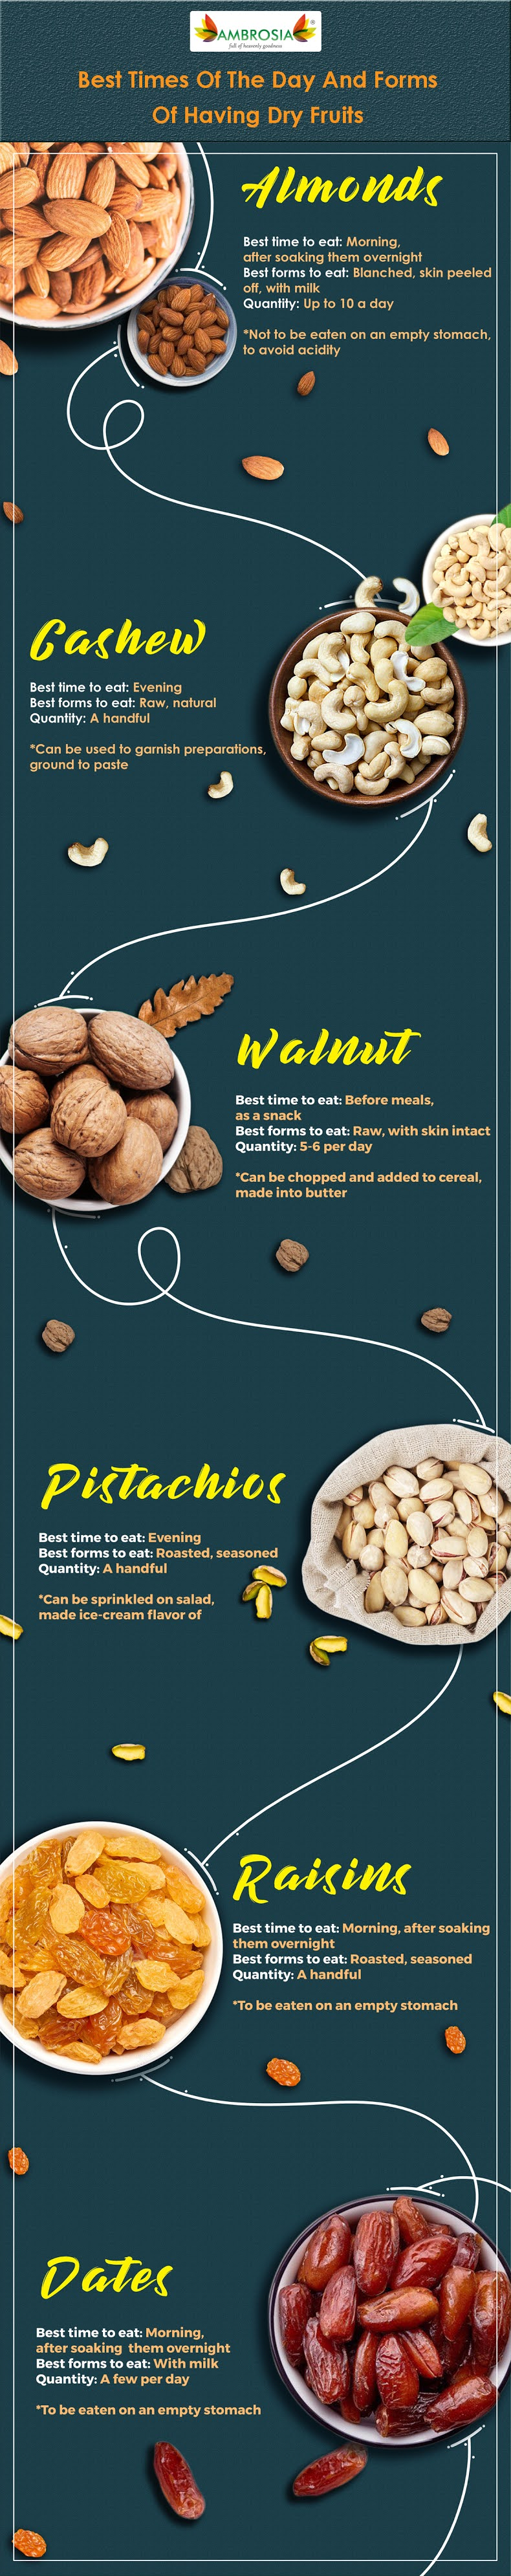 Best Times of the Day and Forms of Having Dry Fruits #infographic  #Dry Fruits #infographics #Health #Nuts